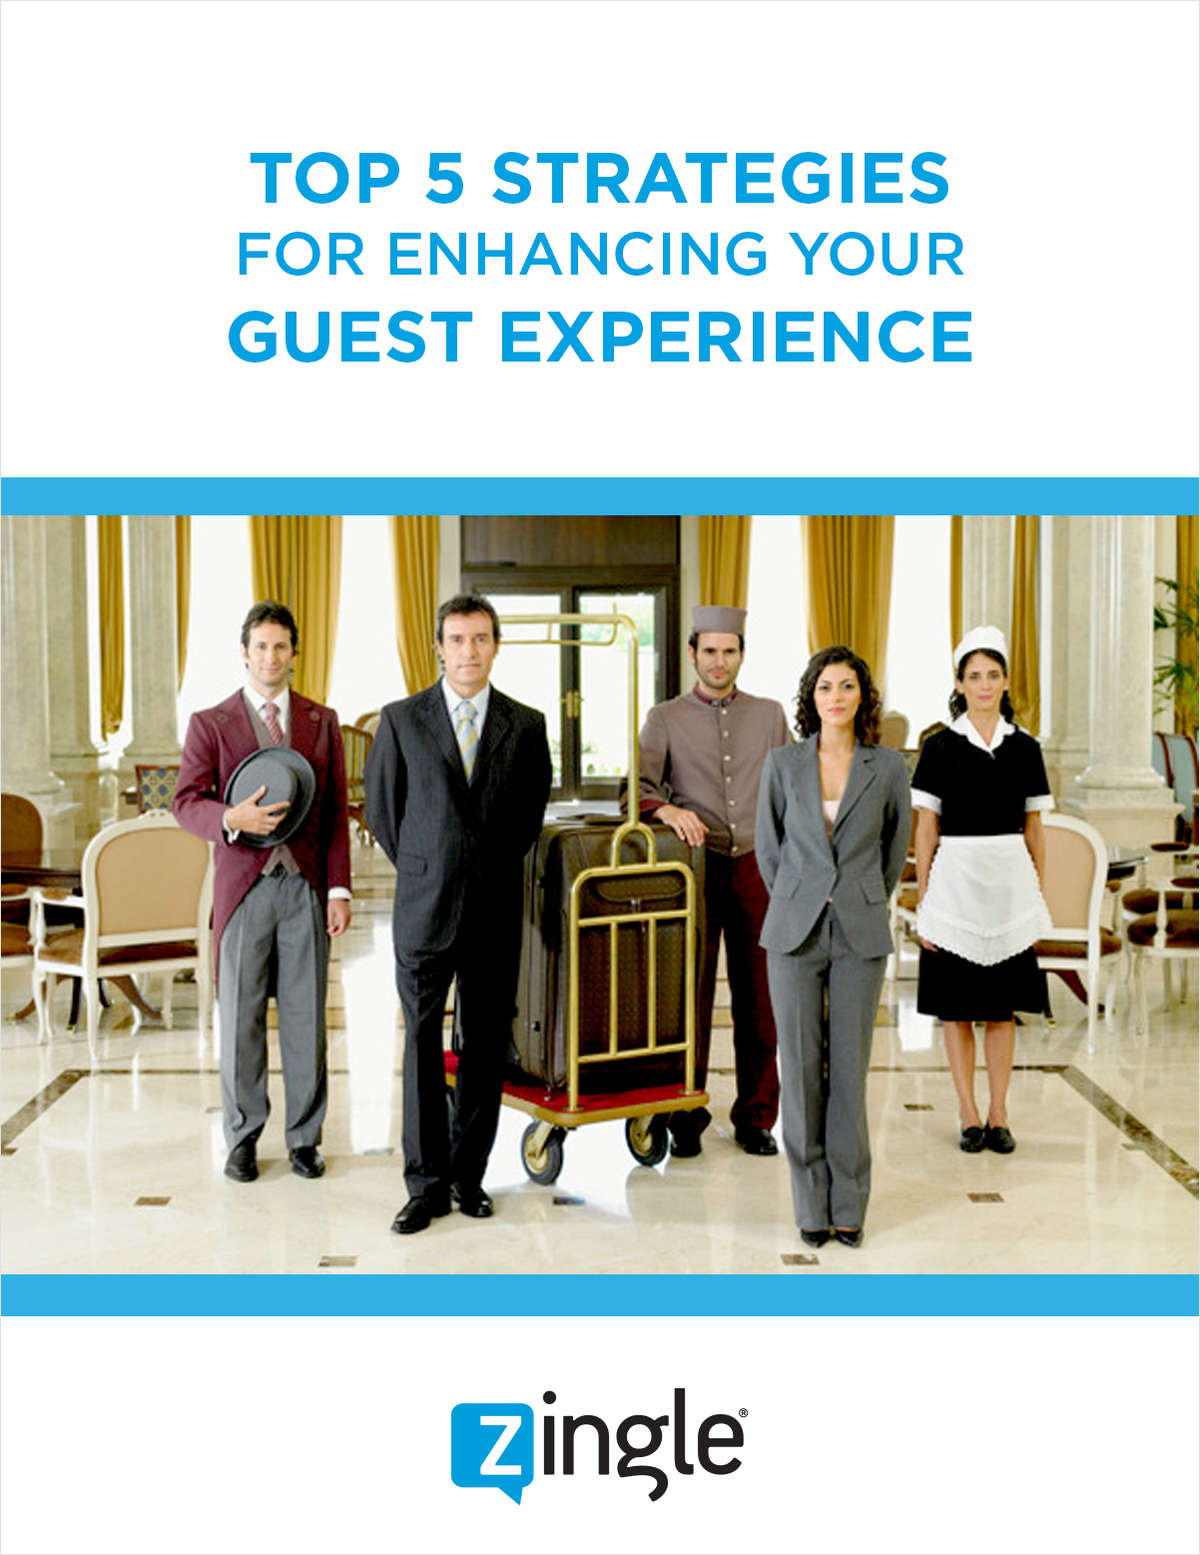 Top 5 Strategies for Enhancing Your Guest Experience